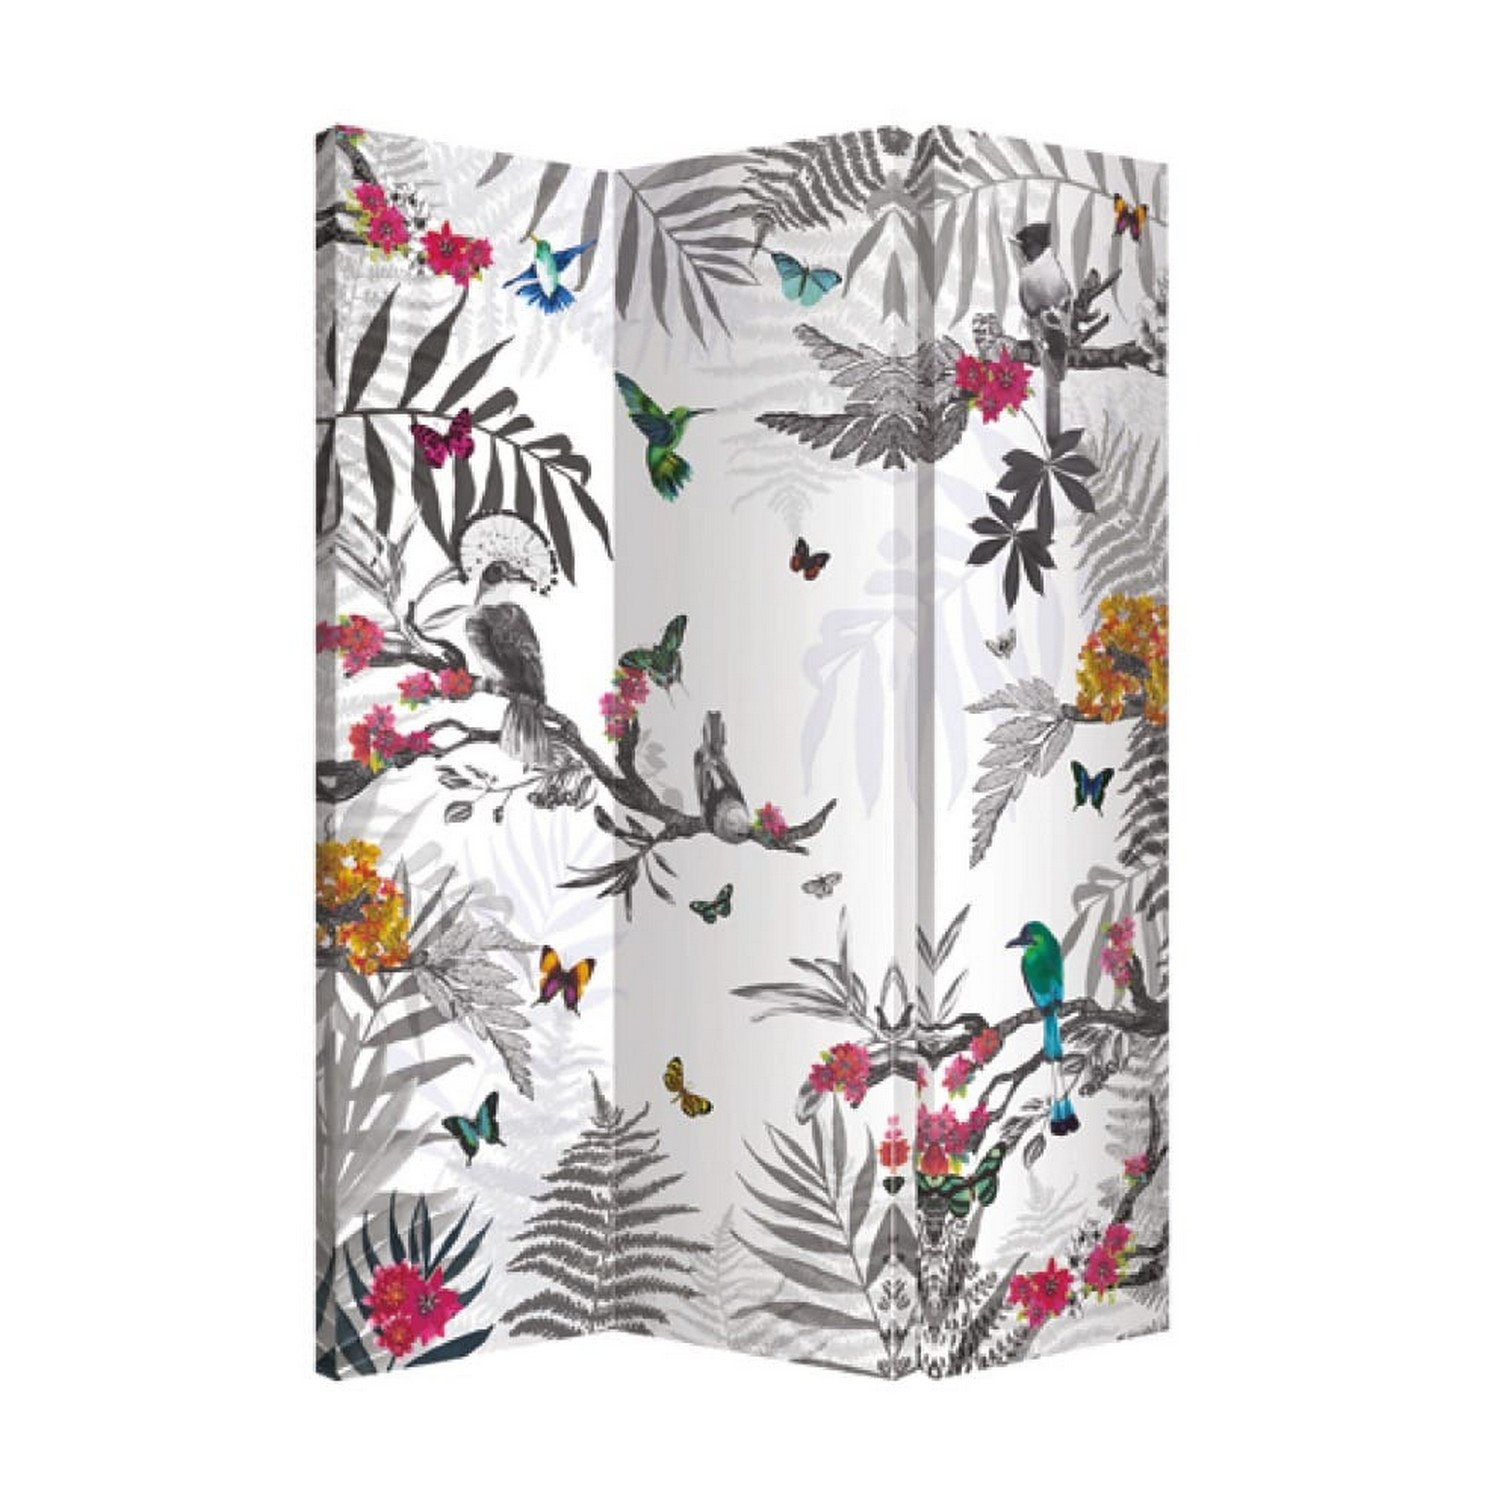 Arthouse Room Divider, Polyester, Multi Coloured, 150 x 120 x 2.5 8300